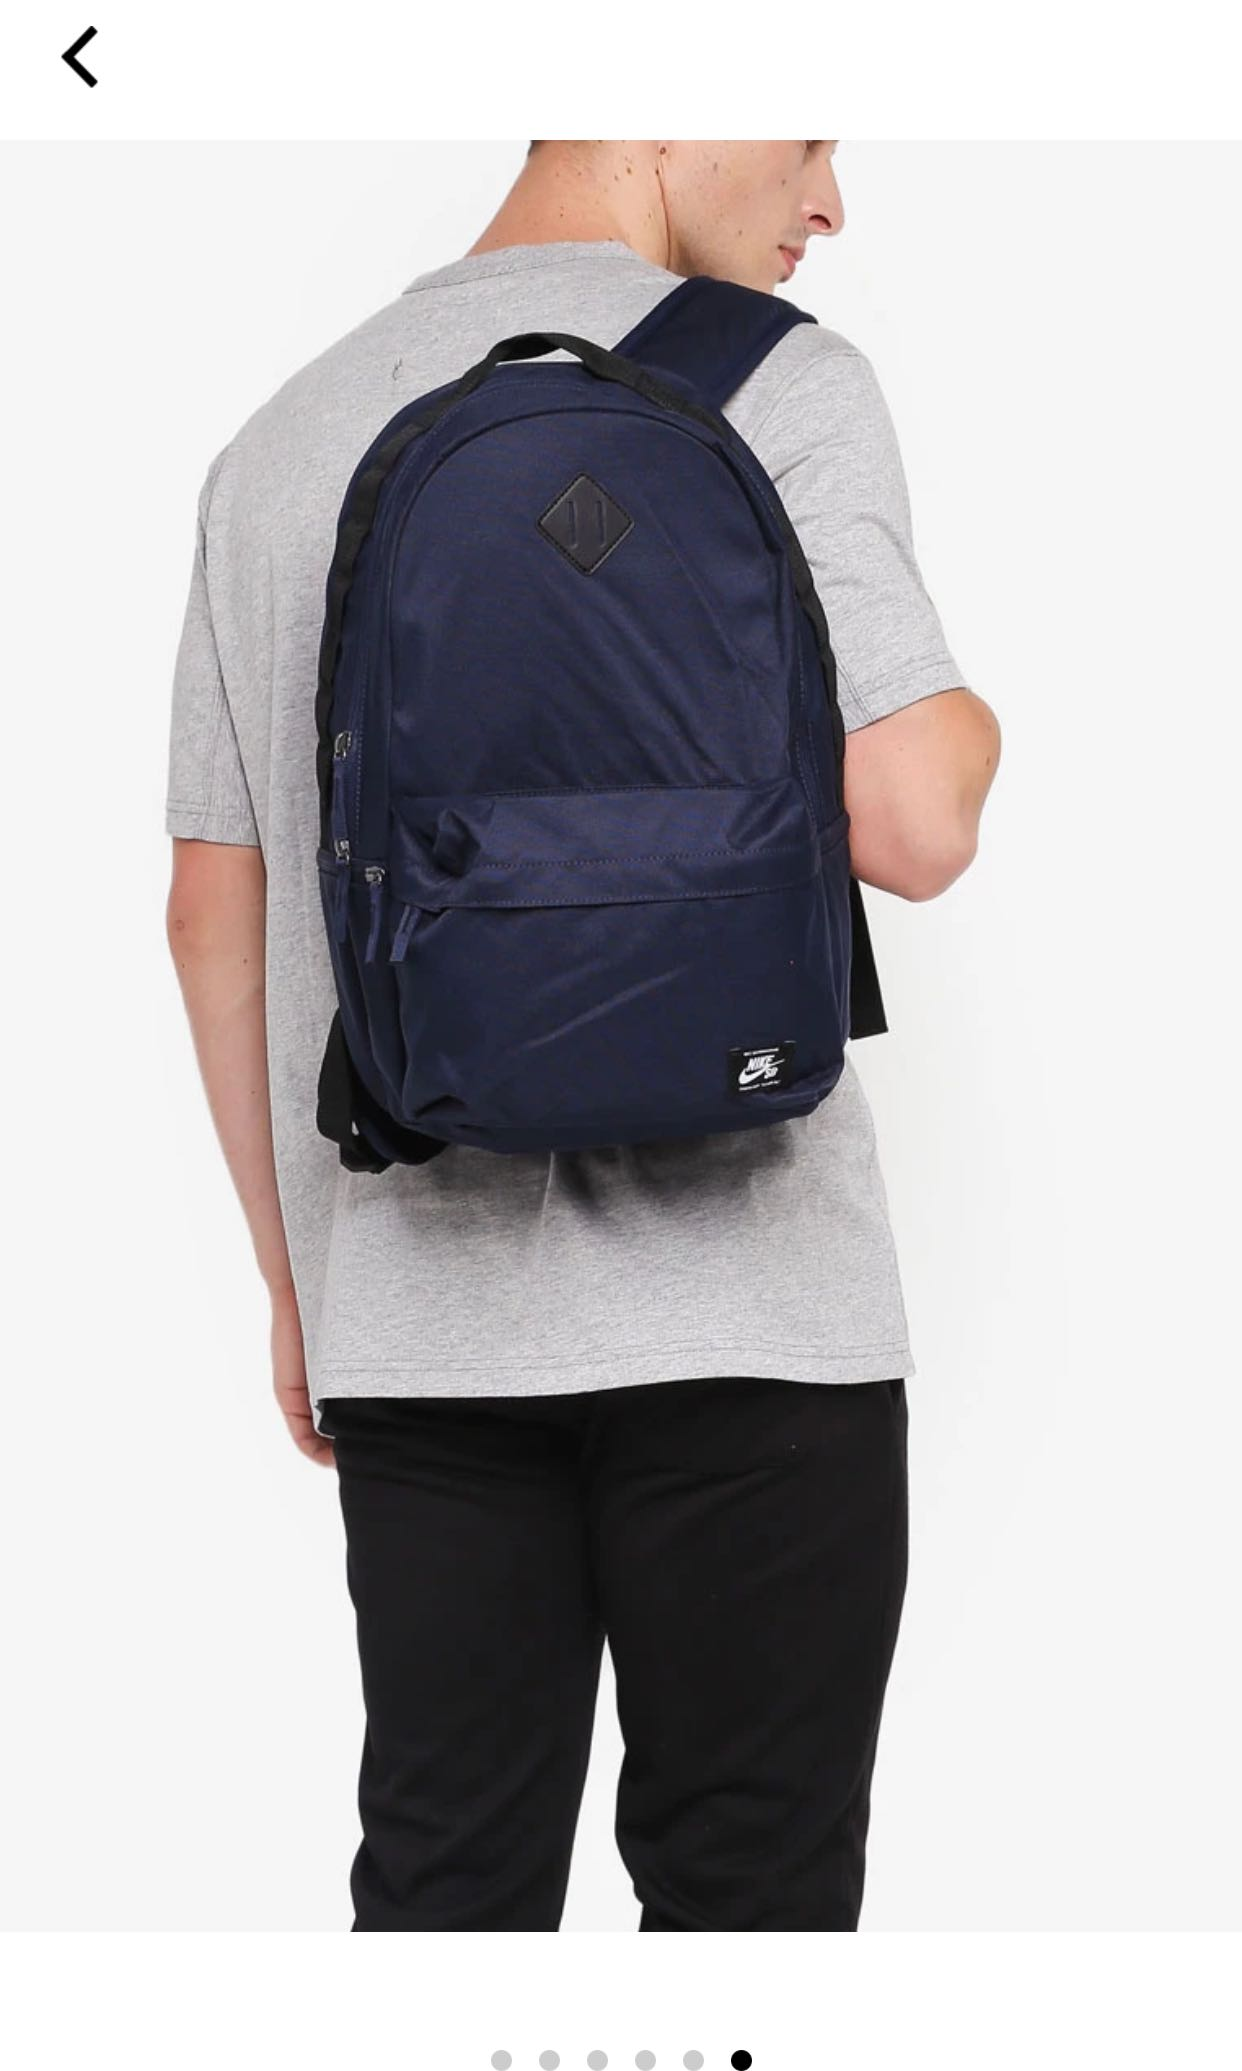 brand new 0b8b5 ca86a Nike Sb Icon Backpack (Full Black), Men s Fashion, Bags   Wallets, Backpacks  on Carousell